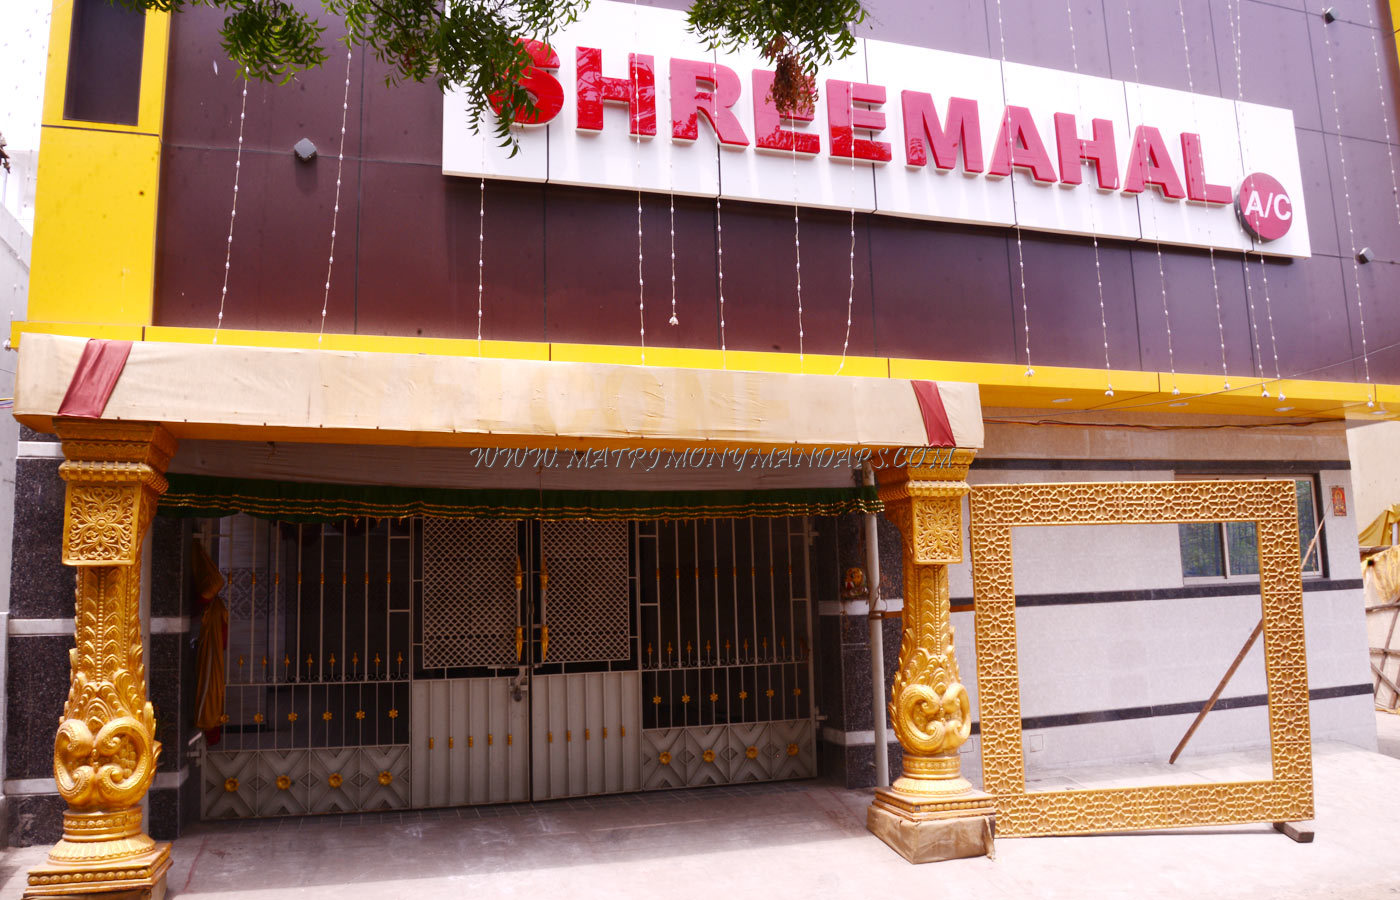 Find the availability of the Shree Mahal (A/C) in Porur, Chennai and avail special offers